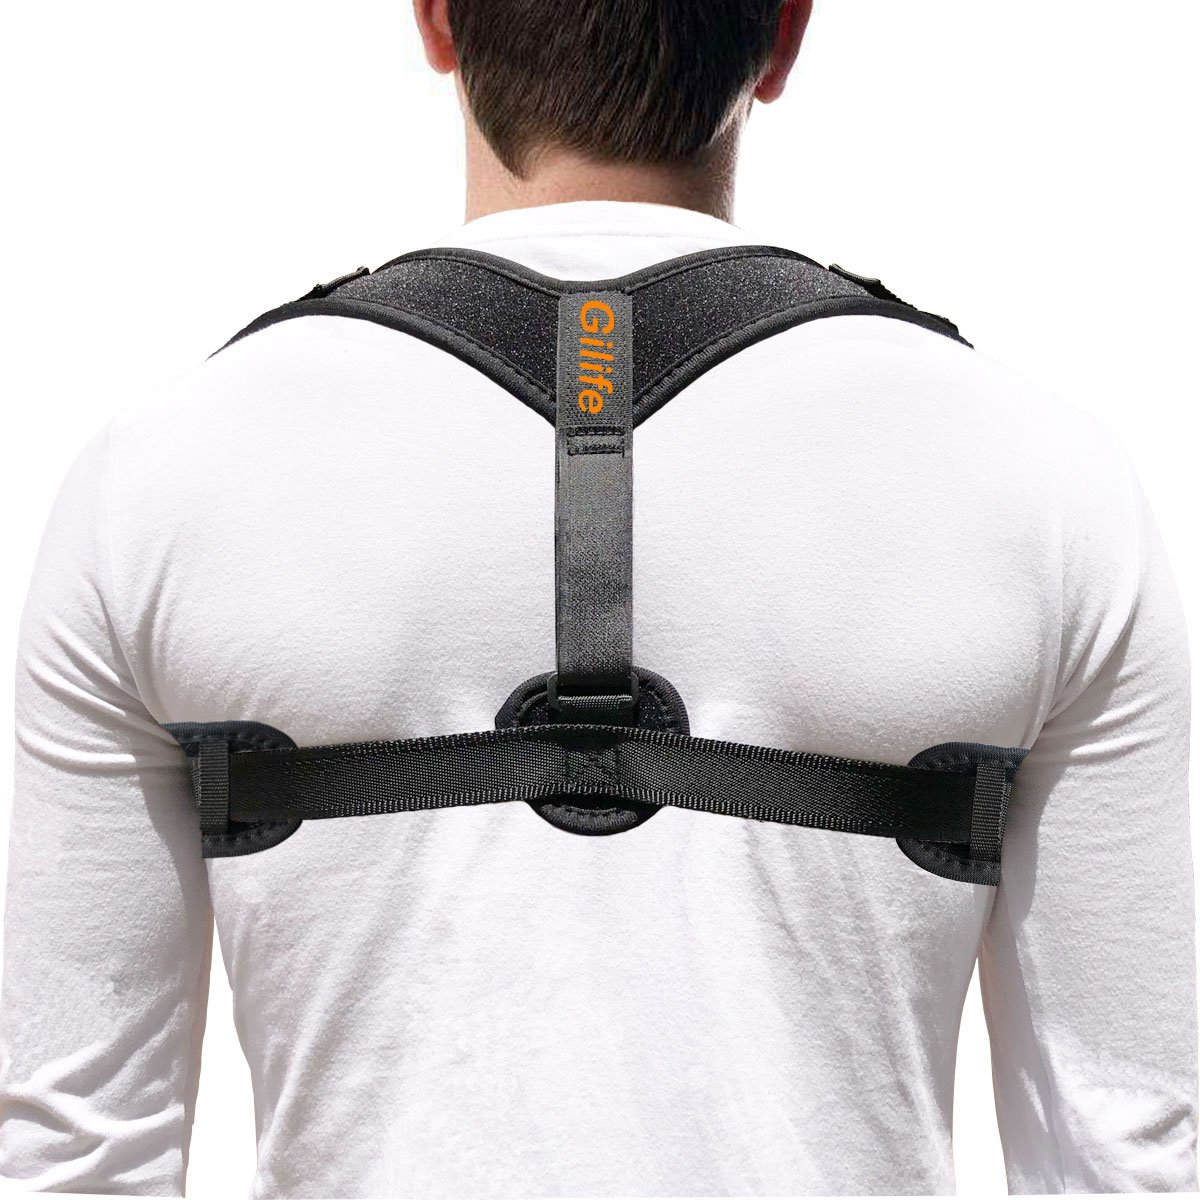 Back Posture Brace for Womens, Mens & Teens - Comfortable and Effective Posture Corrector to Improve Slouching & Hunching - Shoulder Clavicle Support for Pain Relief (Fits 25''-48'' Chest)